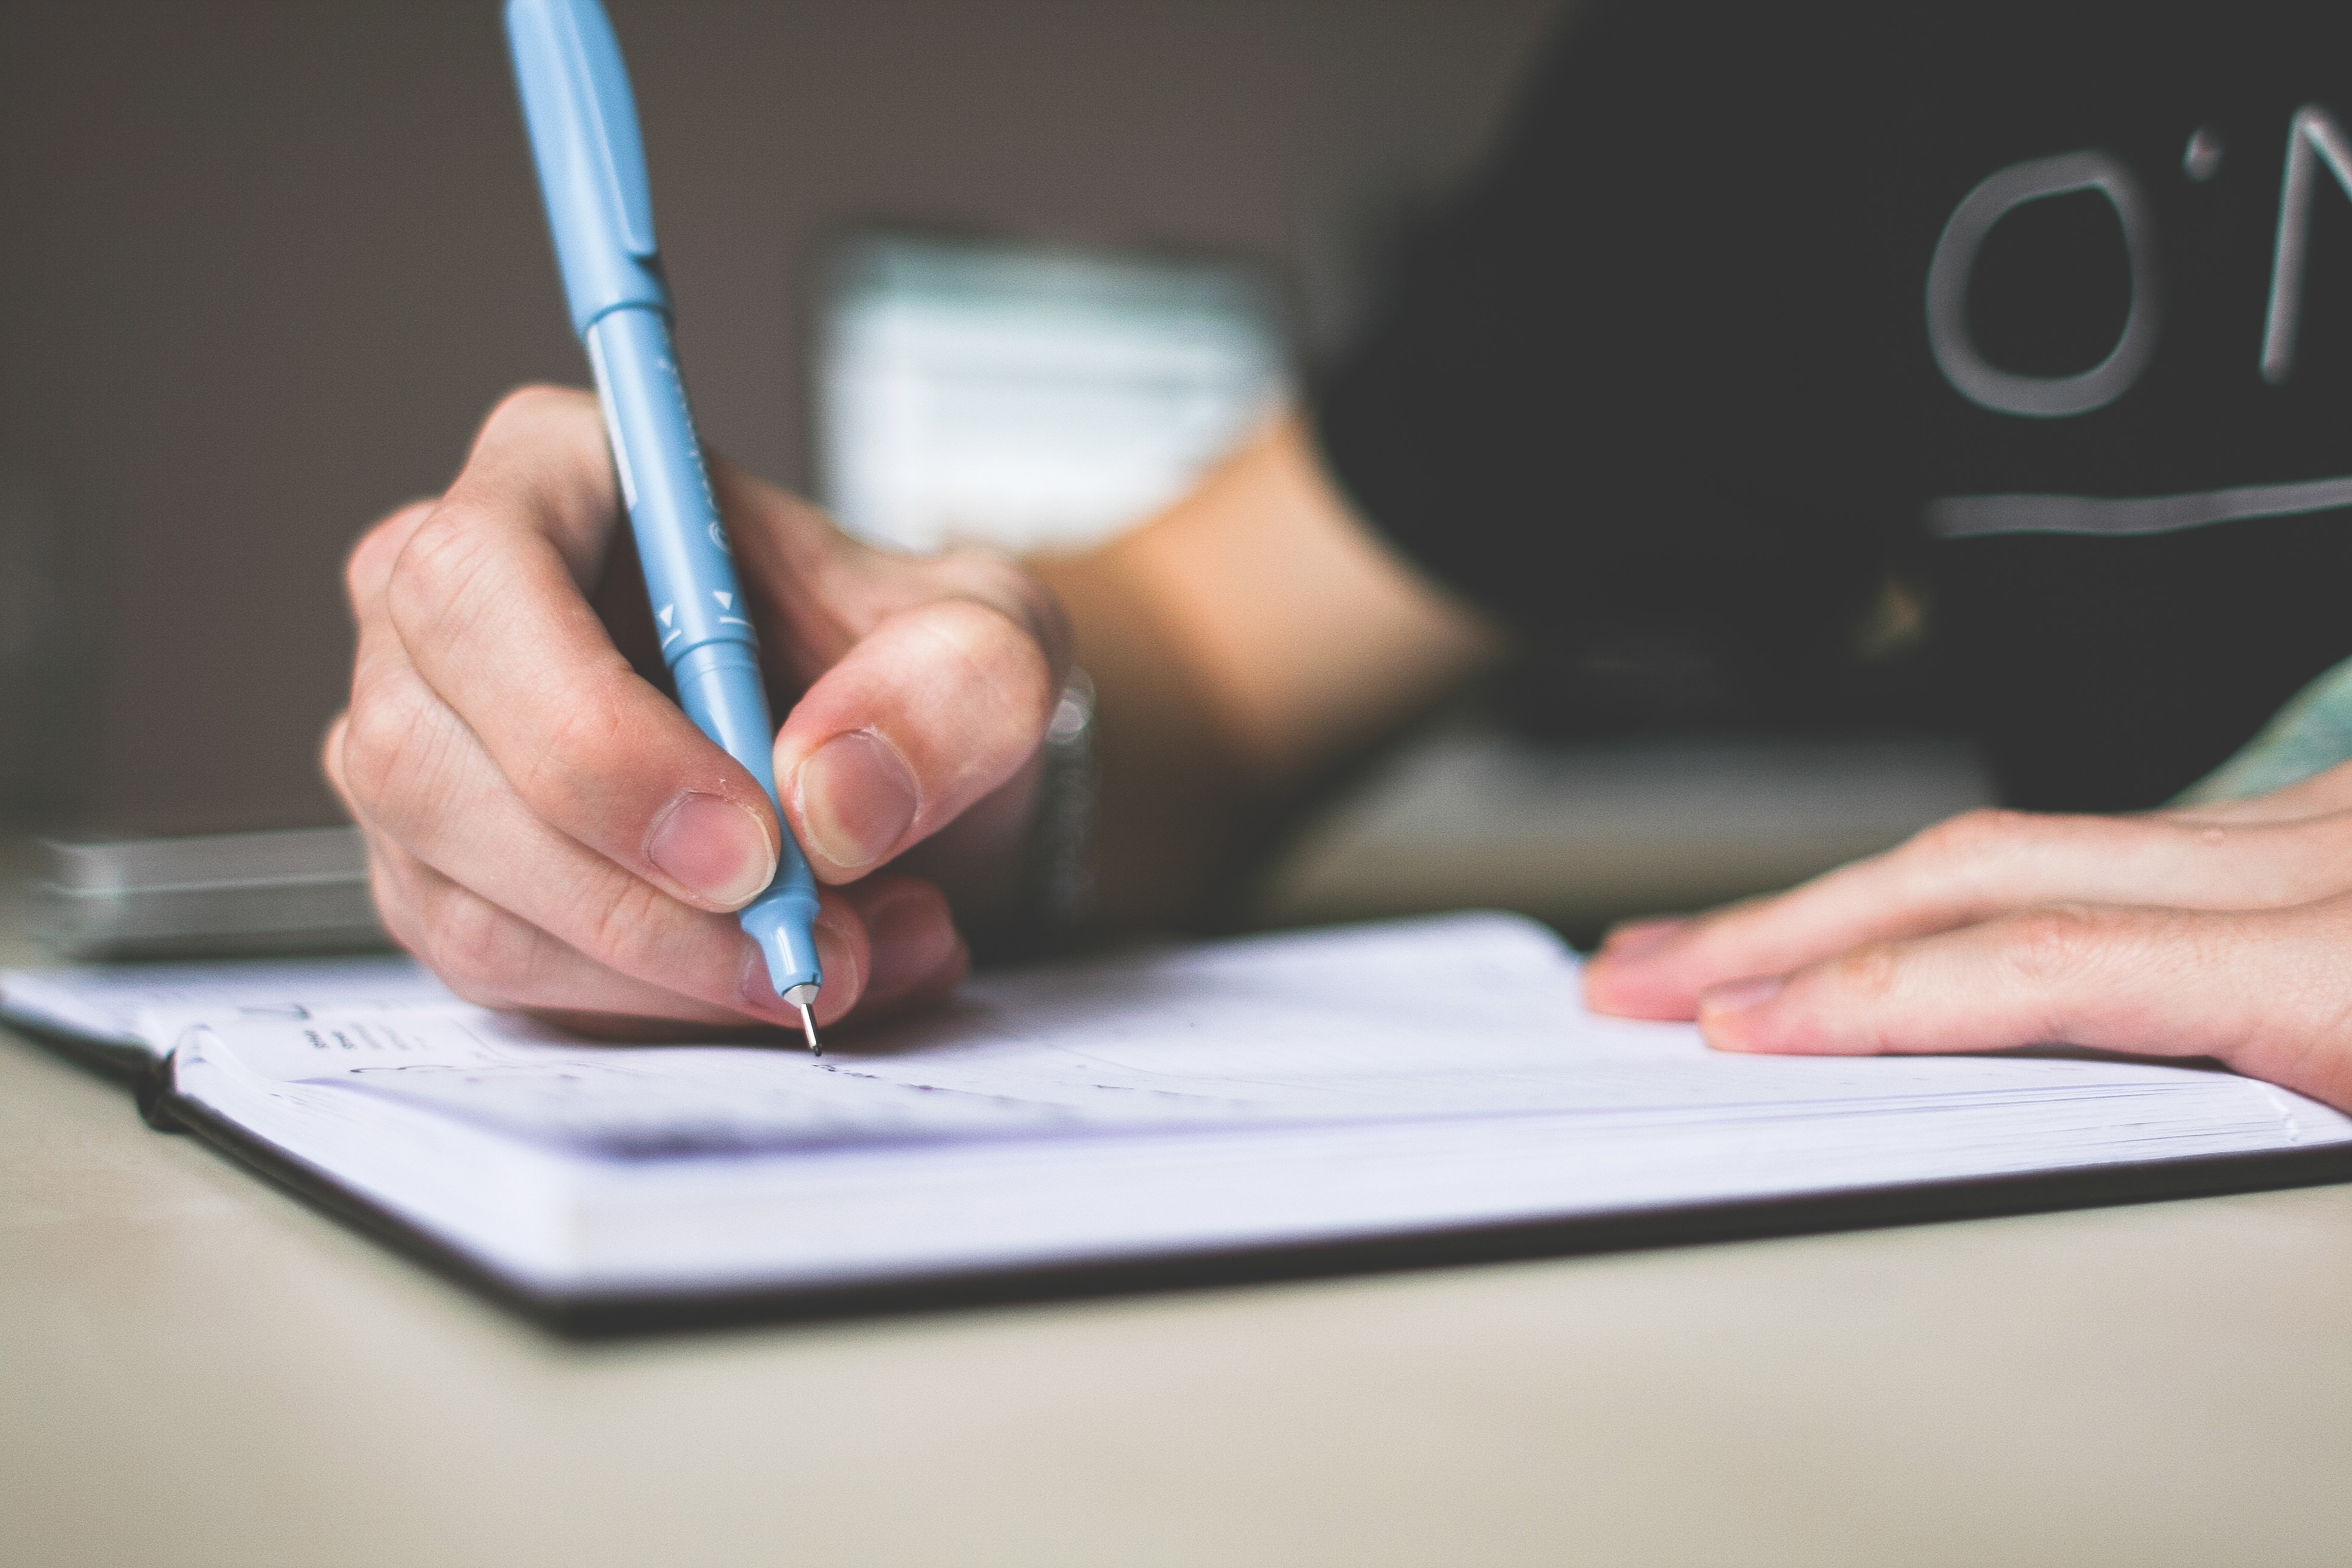 A Checklist – Before Writing a Research Paper